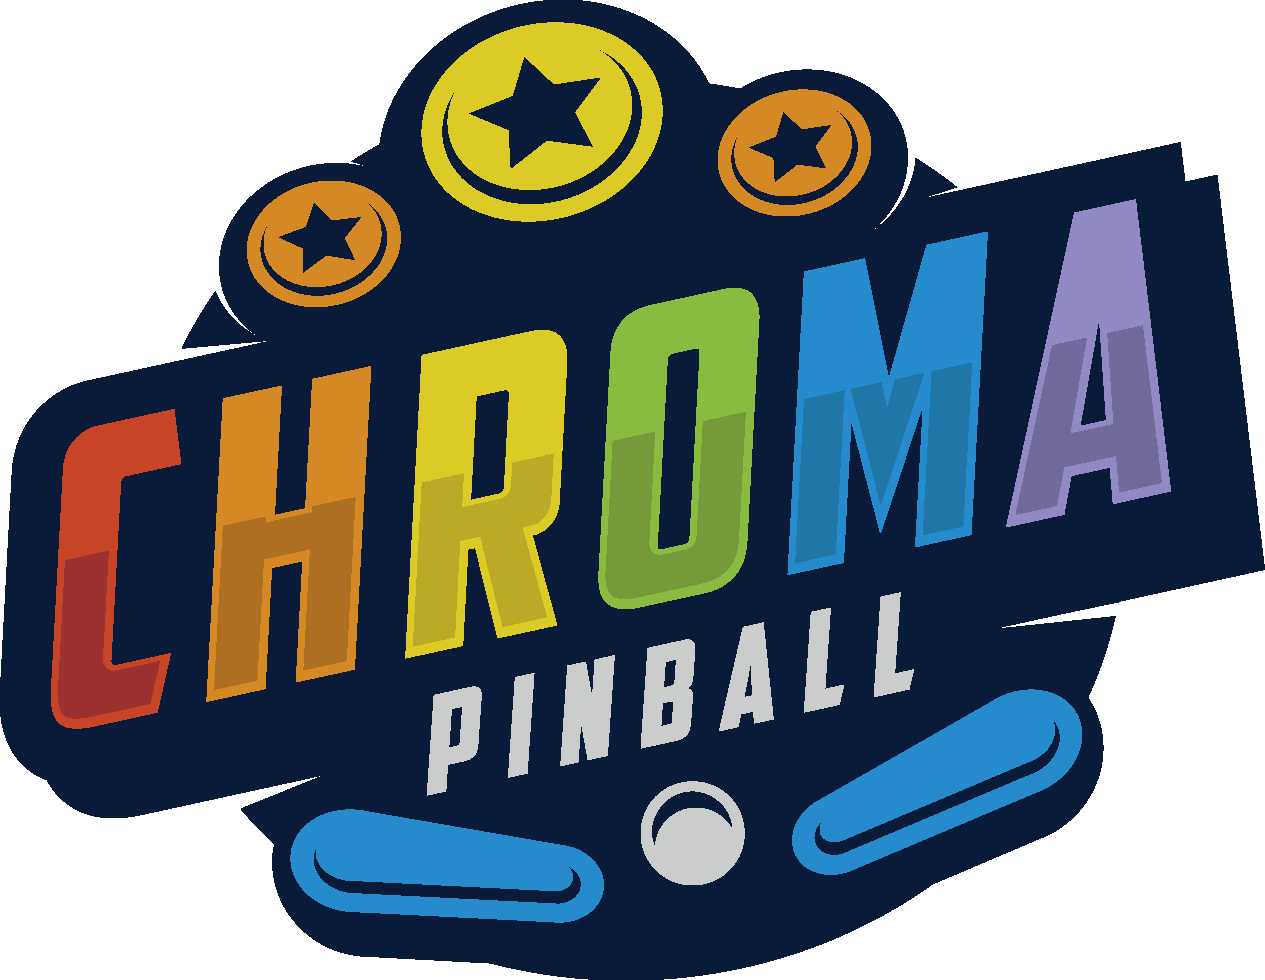 Design a colorful logo for a pinball company!